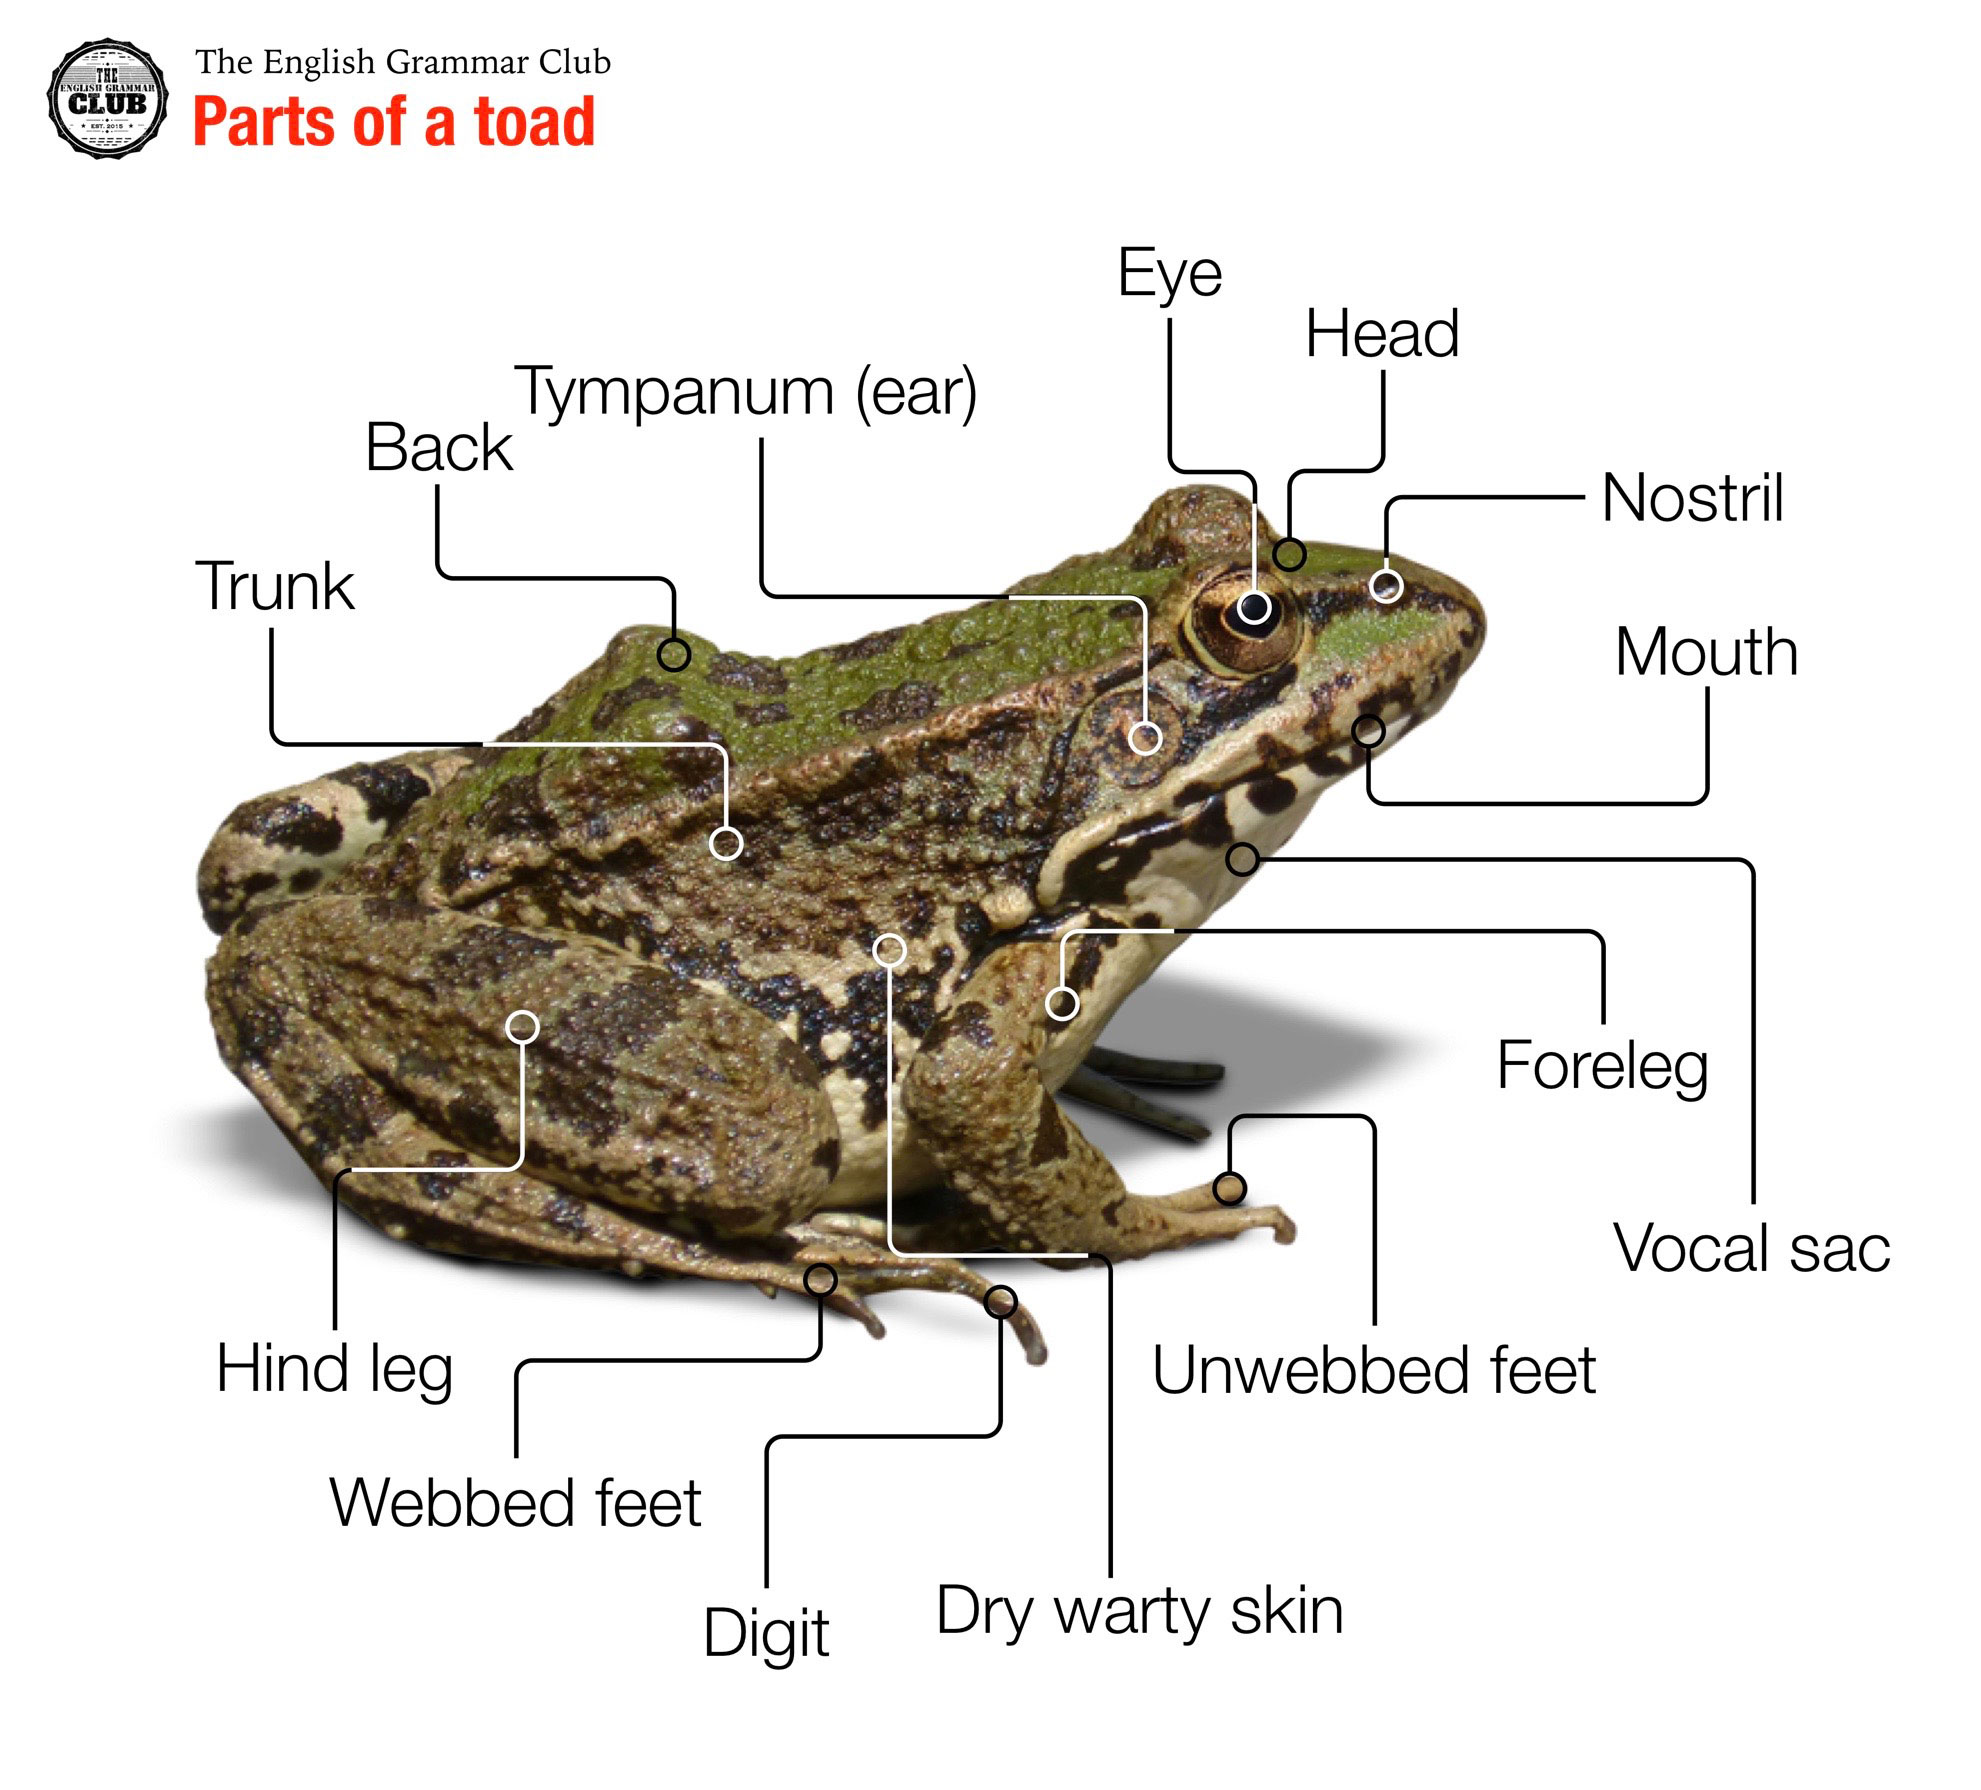 Frogs have no tail, except as larvae, and most have long hind legs, elongated ankle bones, webbed toes, no claws, large eyes, and a smooth or warty skin.